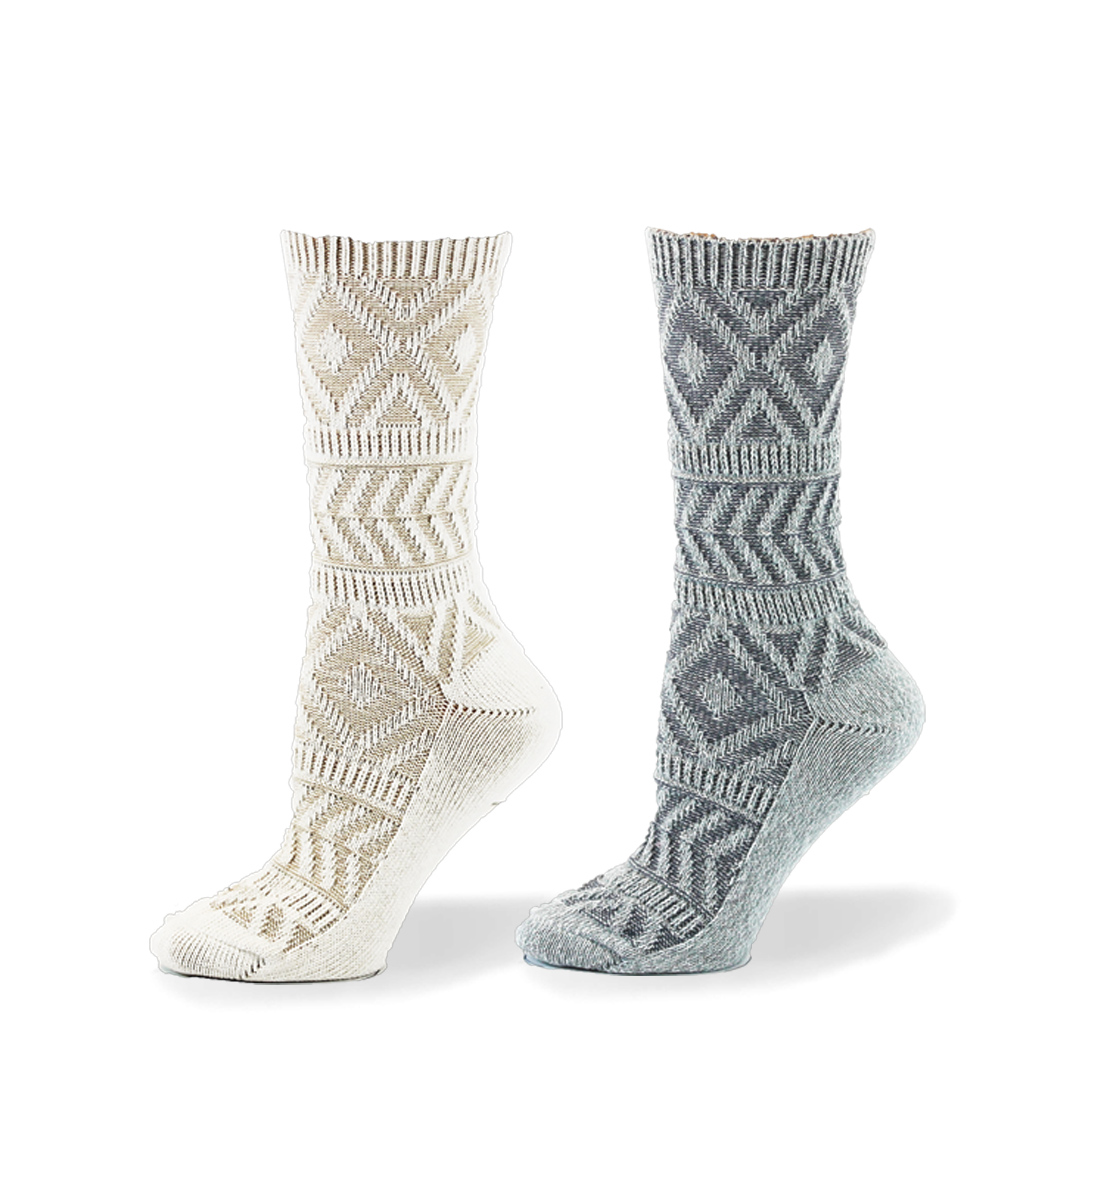 Aztec Textured Mid-Calf Socks, Light Grey, hi-res